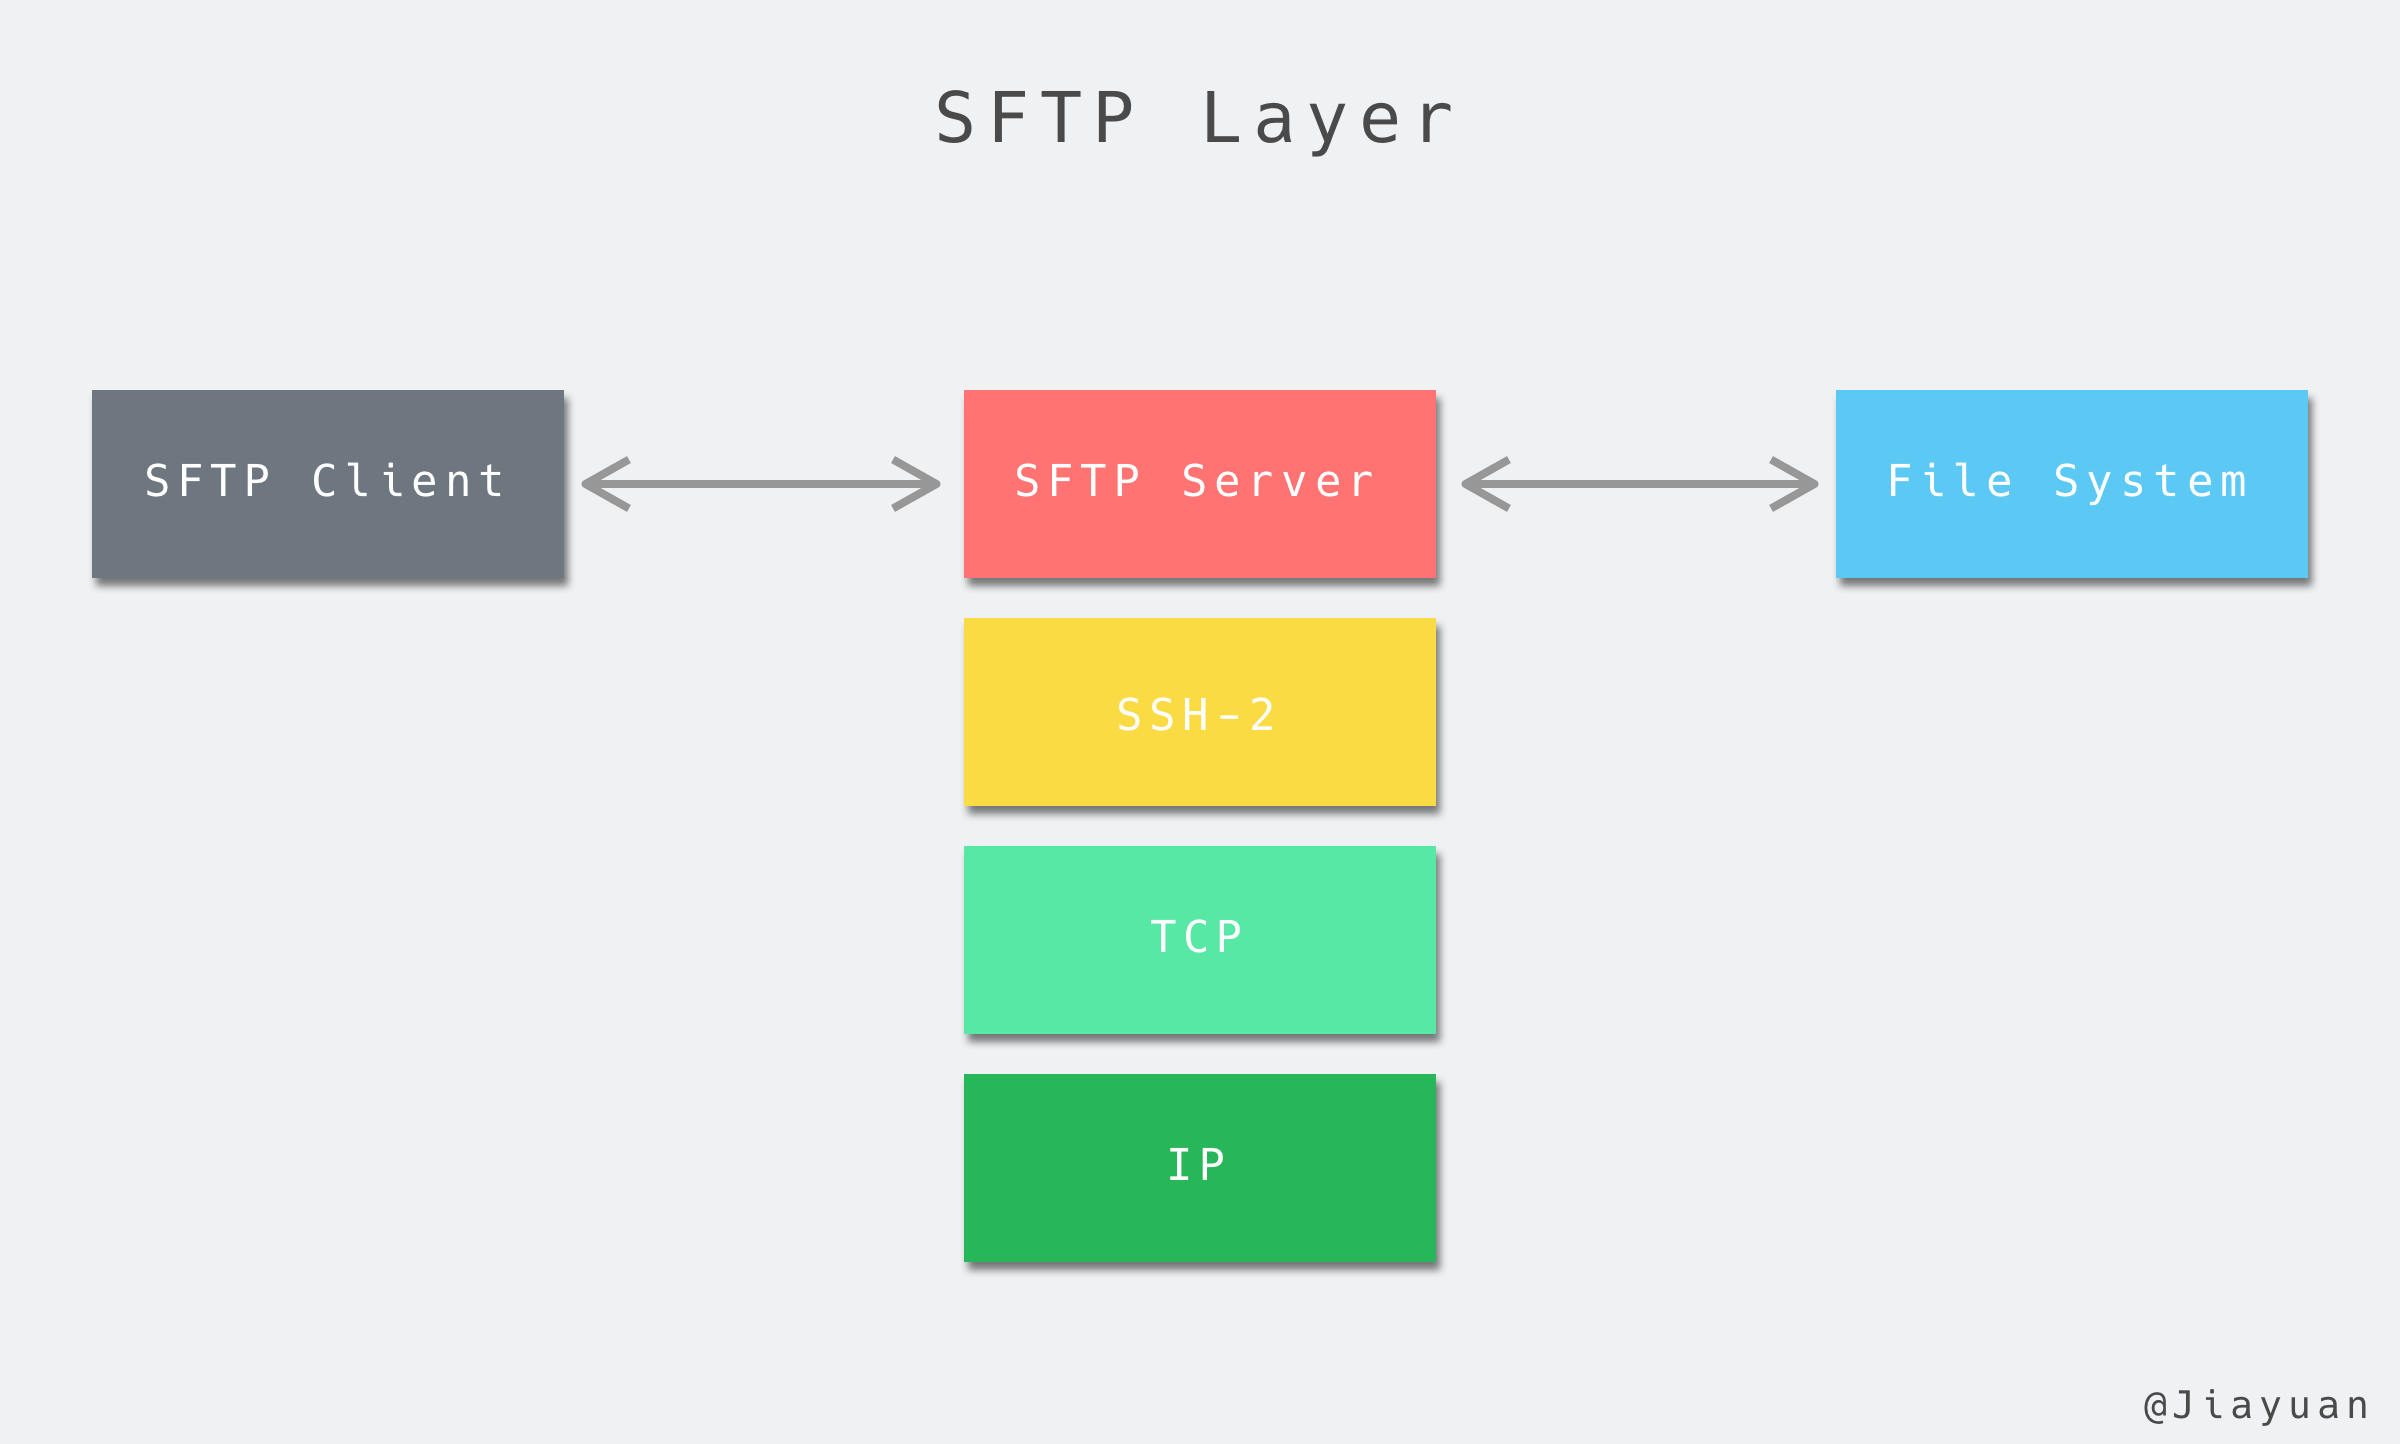 sftp-layer